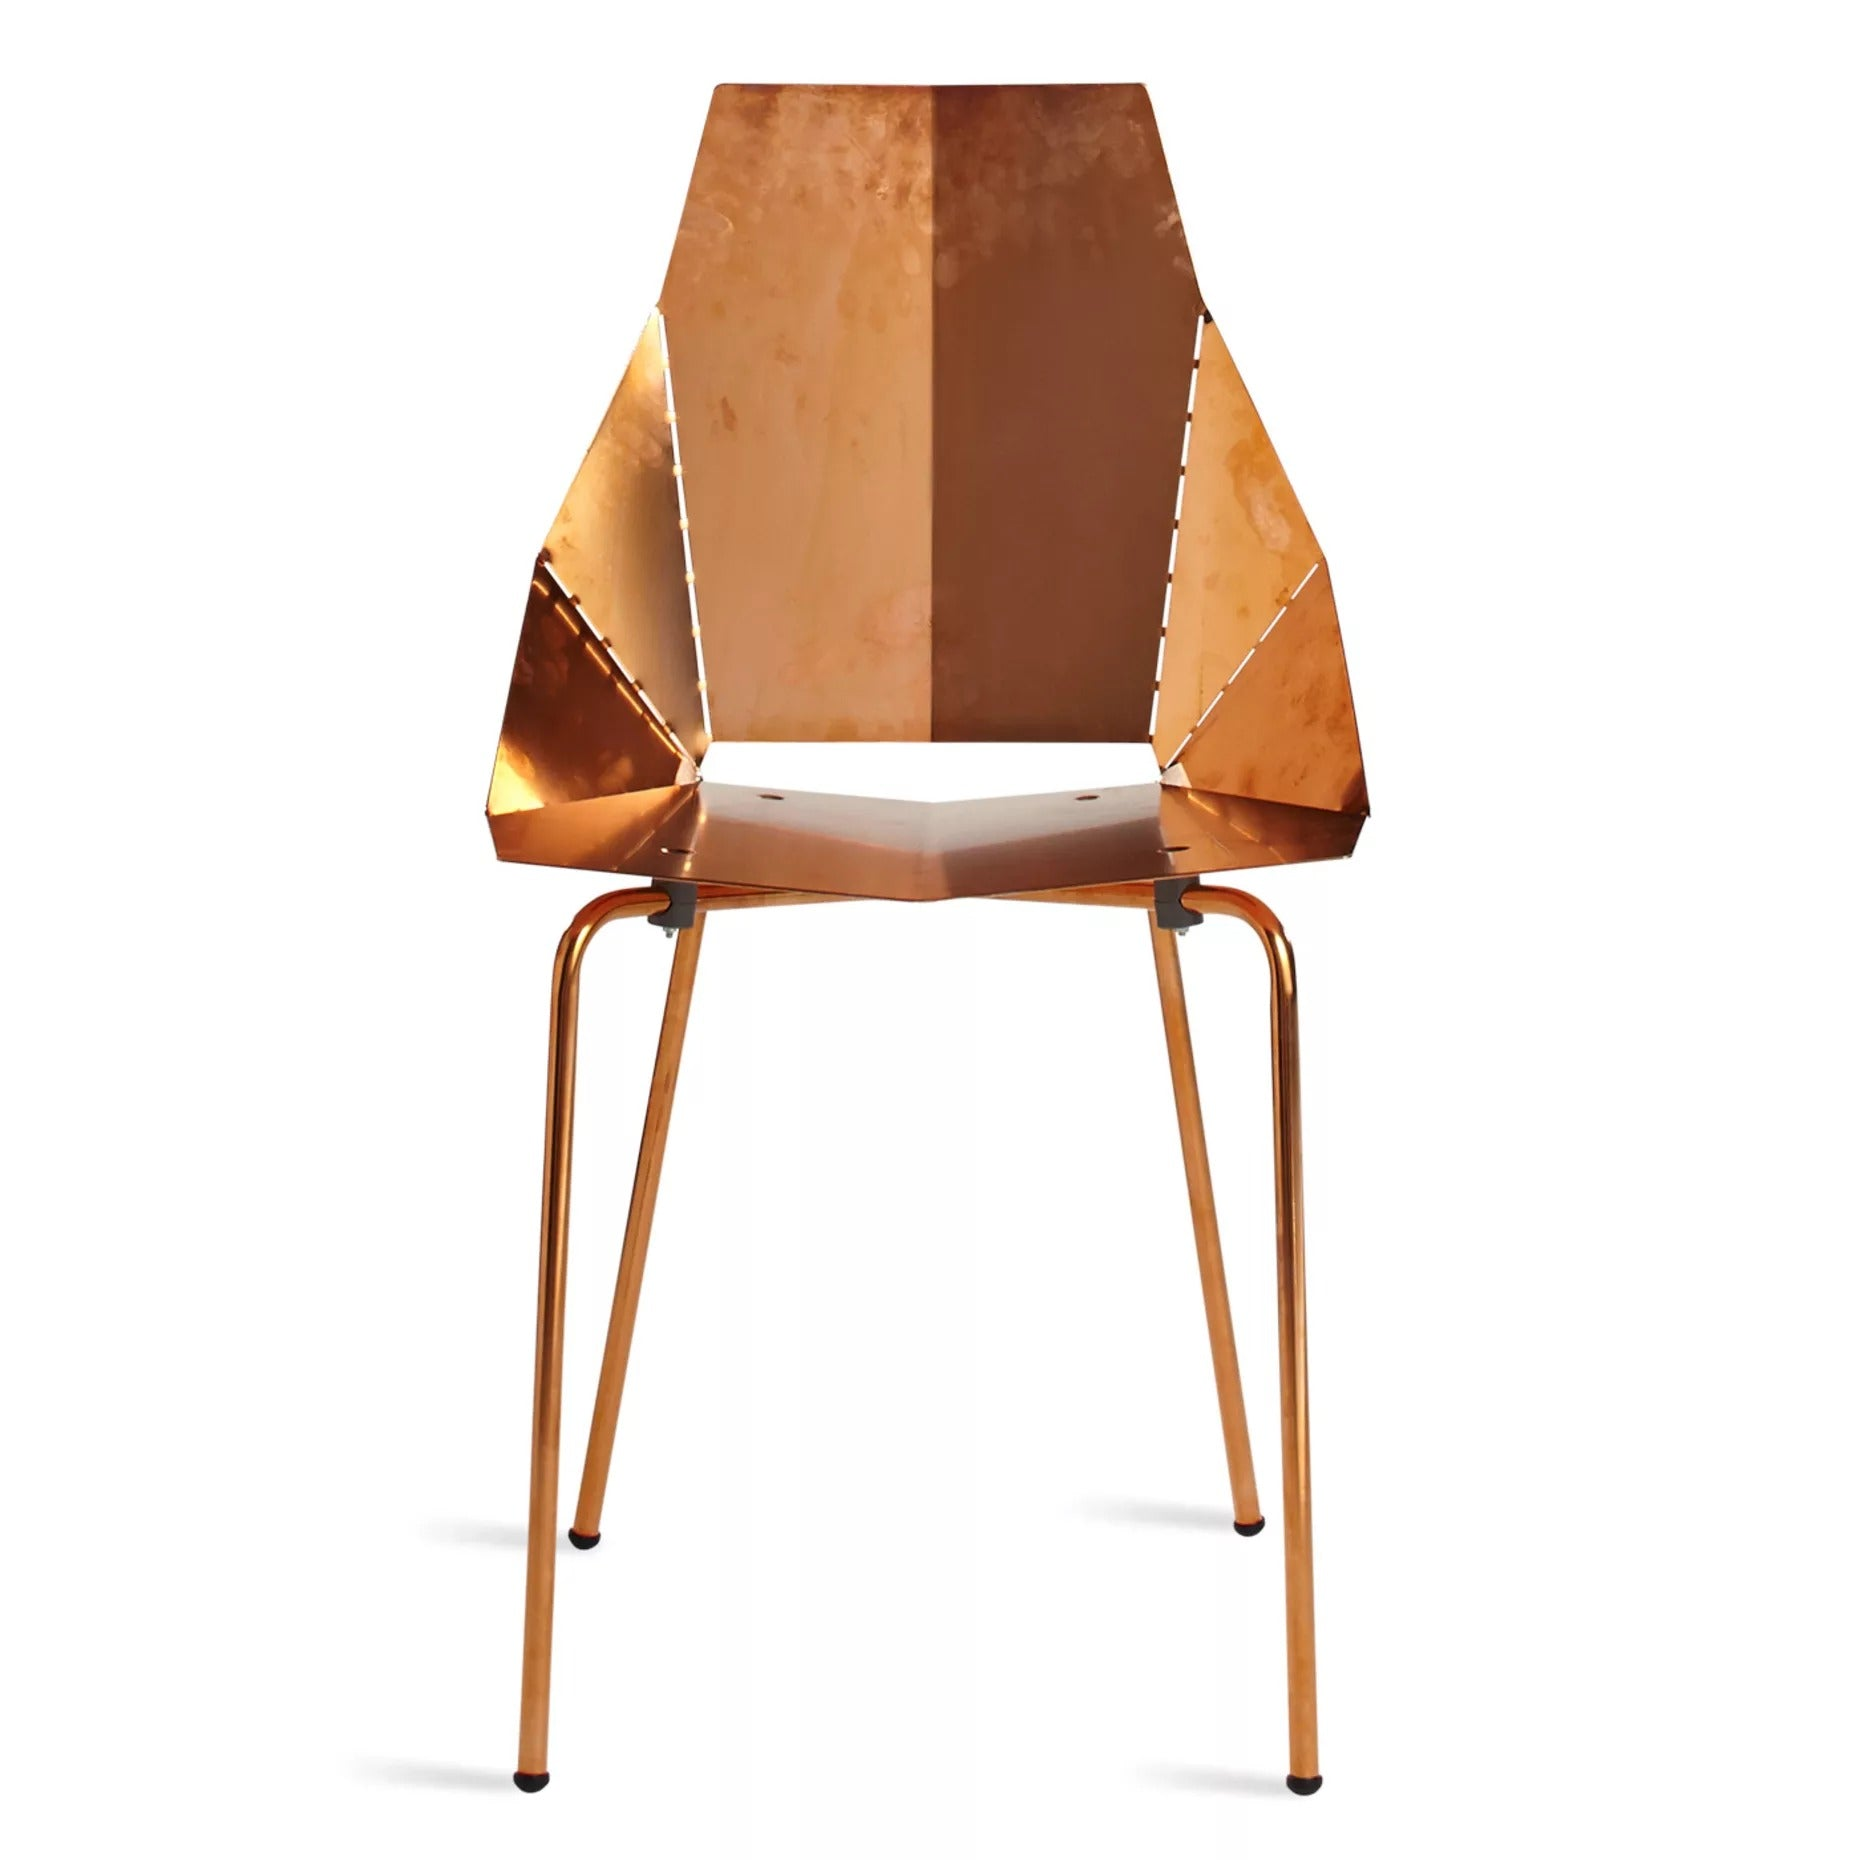 Real Good Chair - Copper